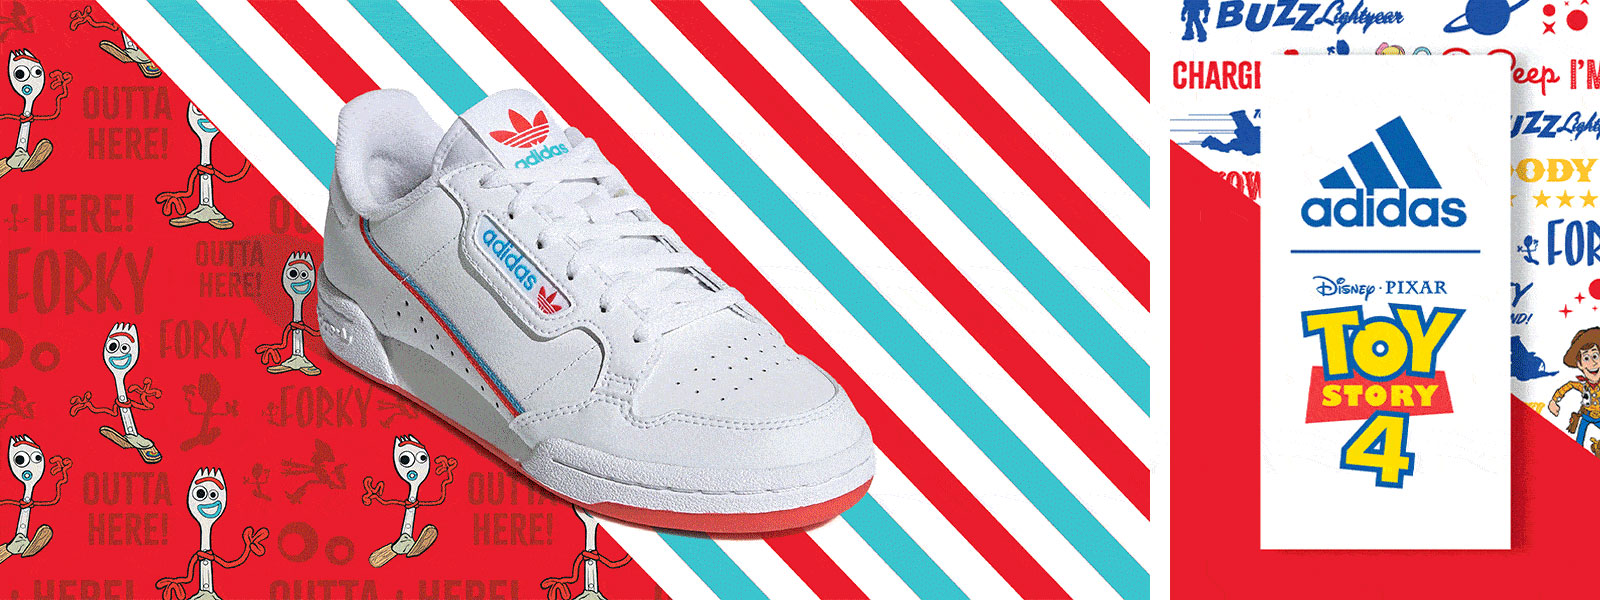 forky-toy-story-4-adidas-continental-80-shoe